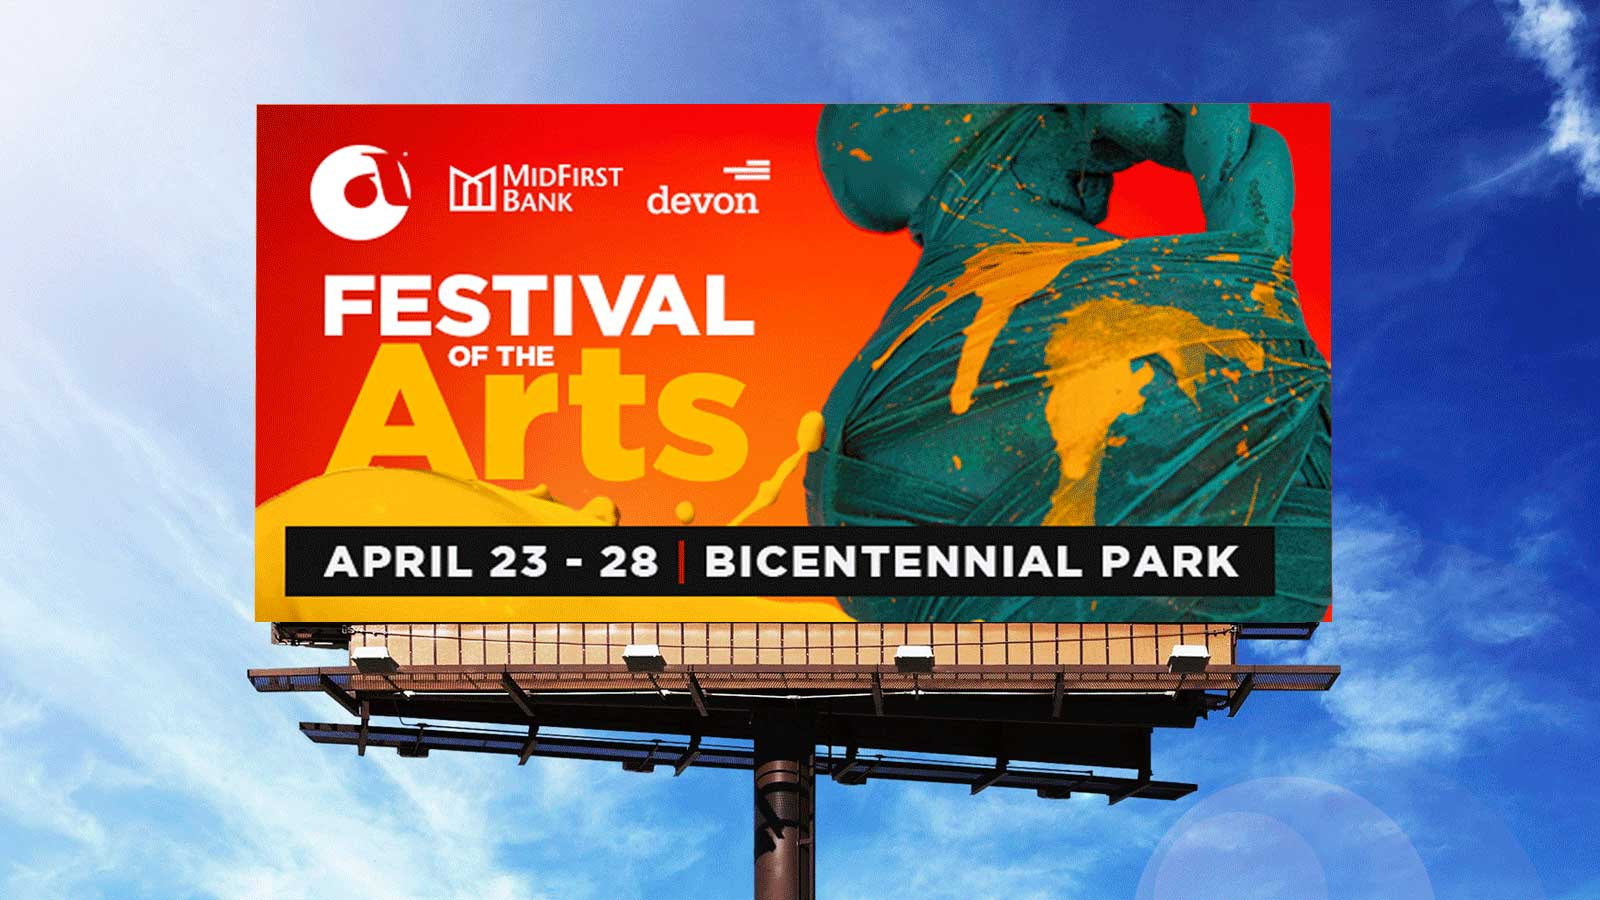 Insight Creative Group's billboard design for Festival of the Arts 2019